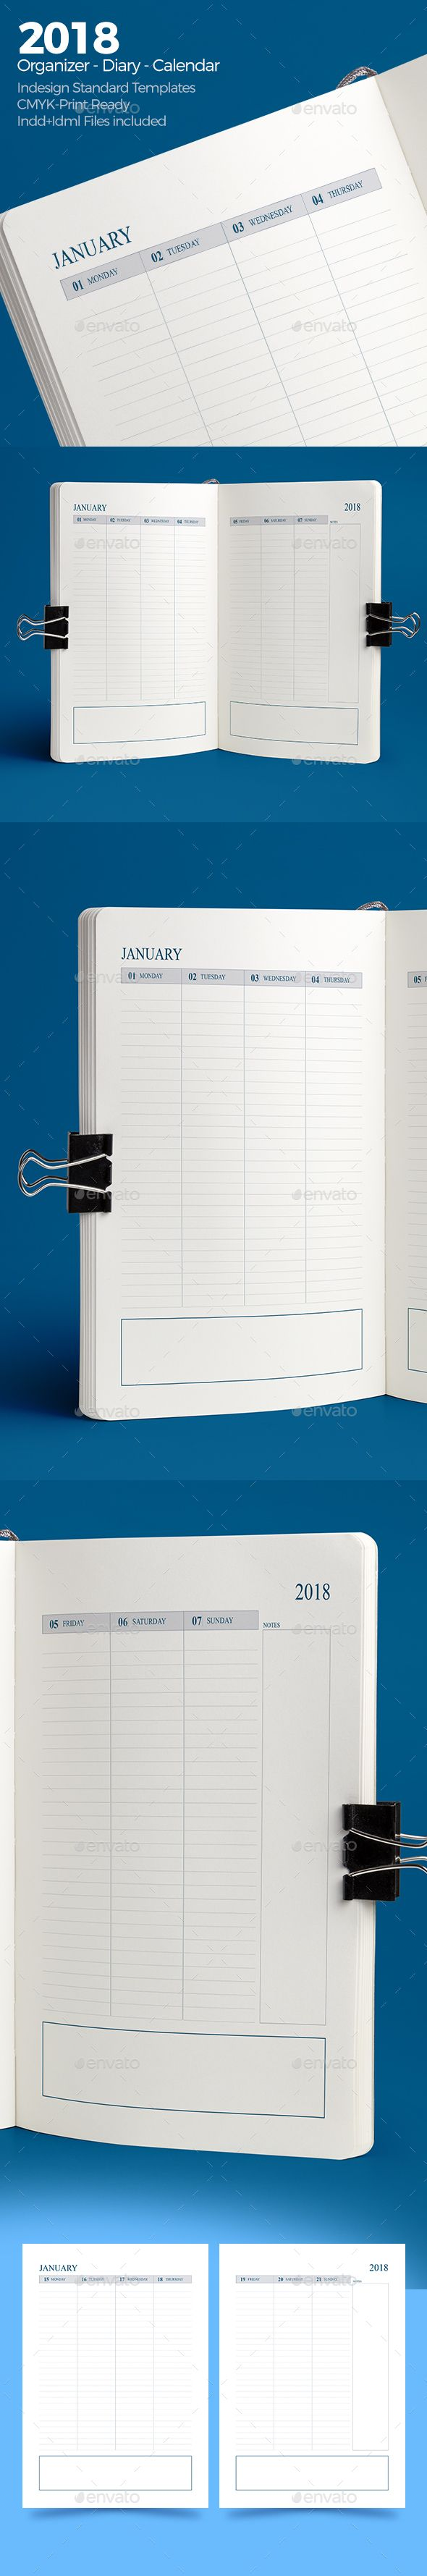 Weekly Diary Planner 2018 v4 - #Calendars #Stationery